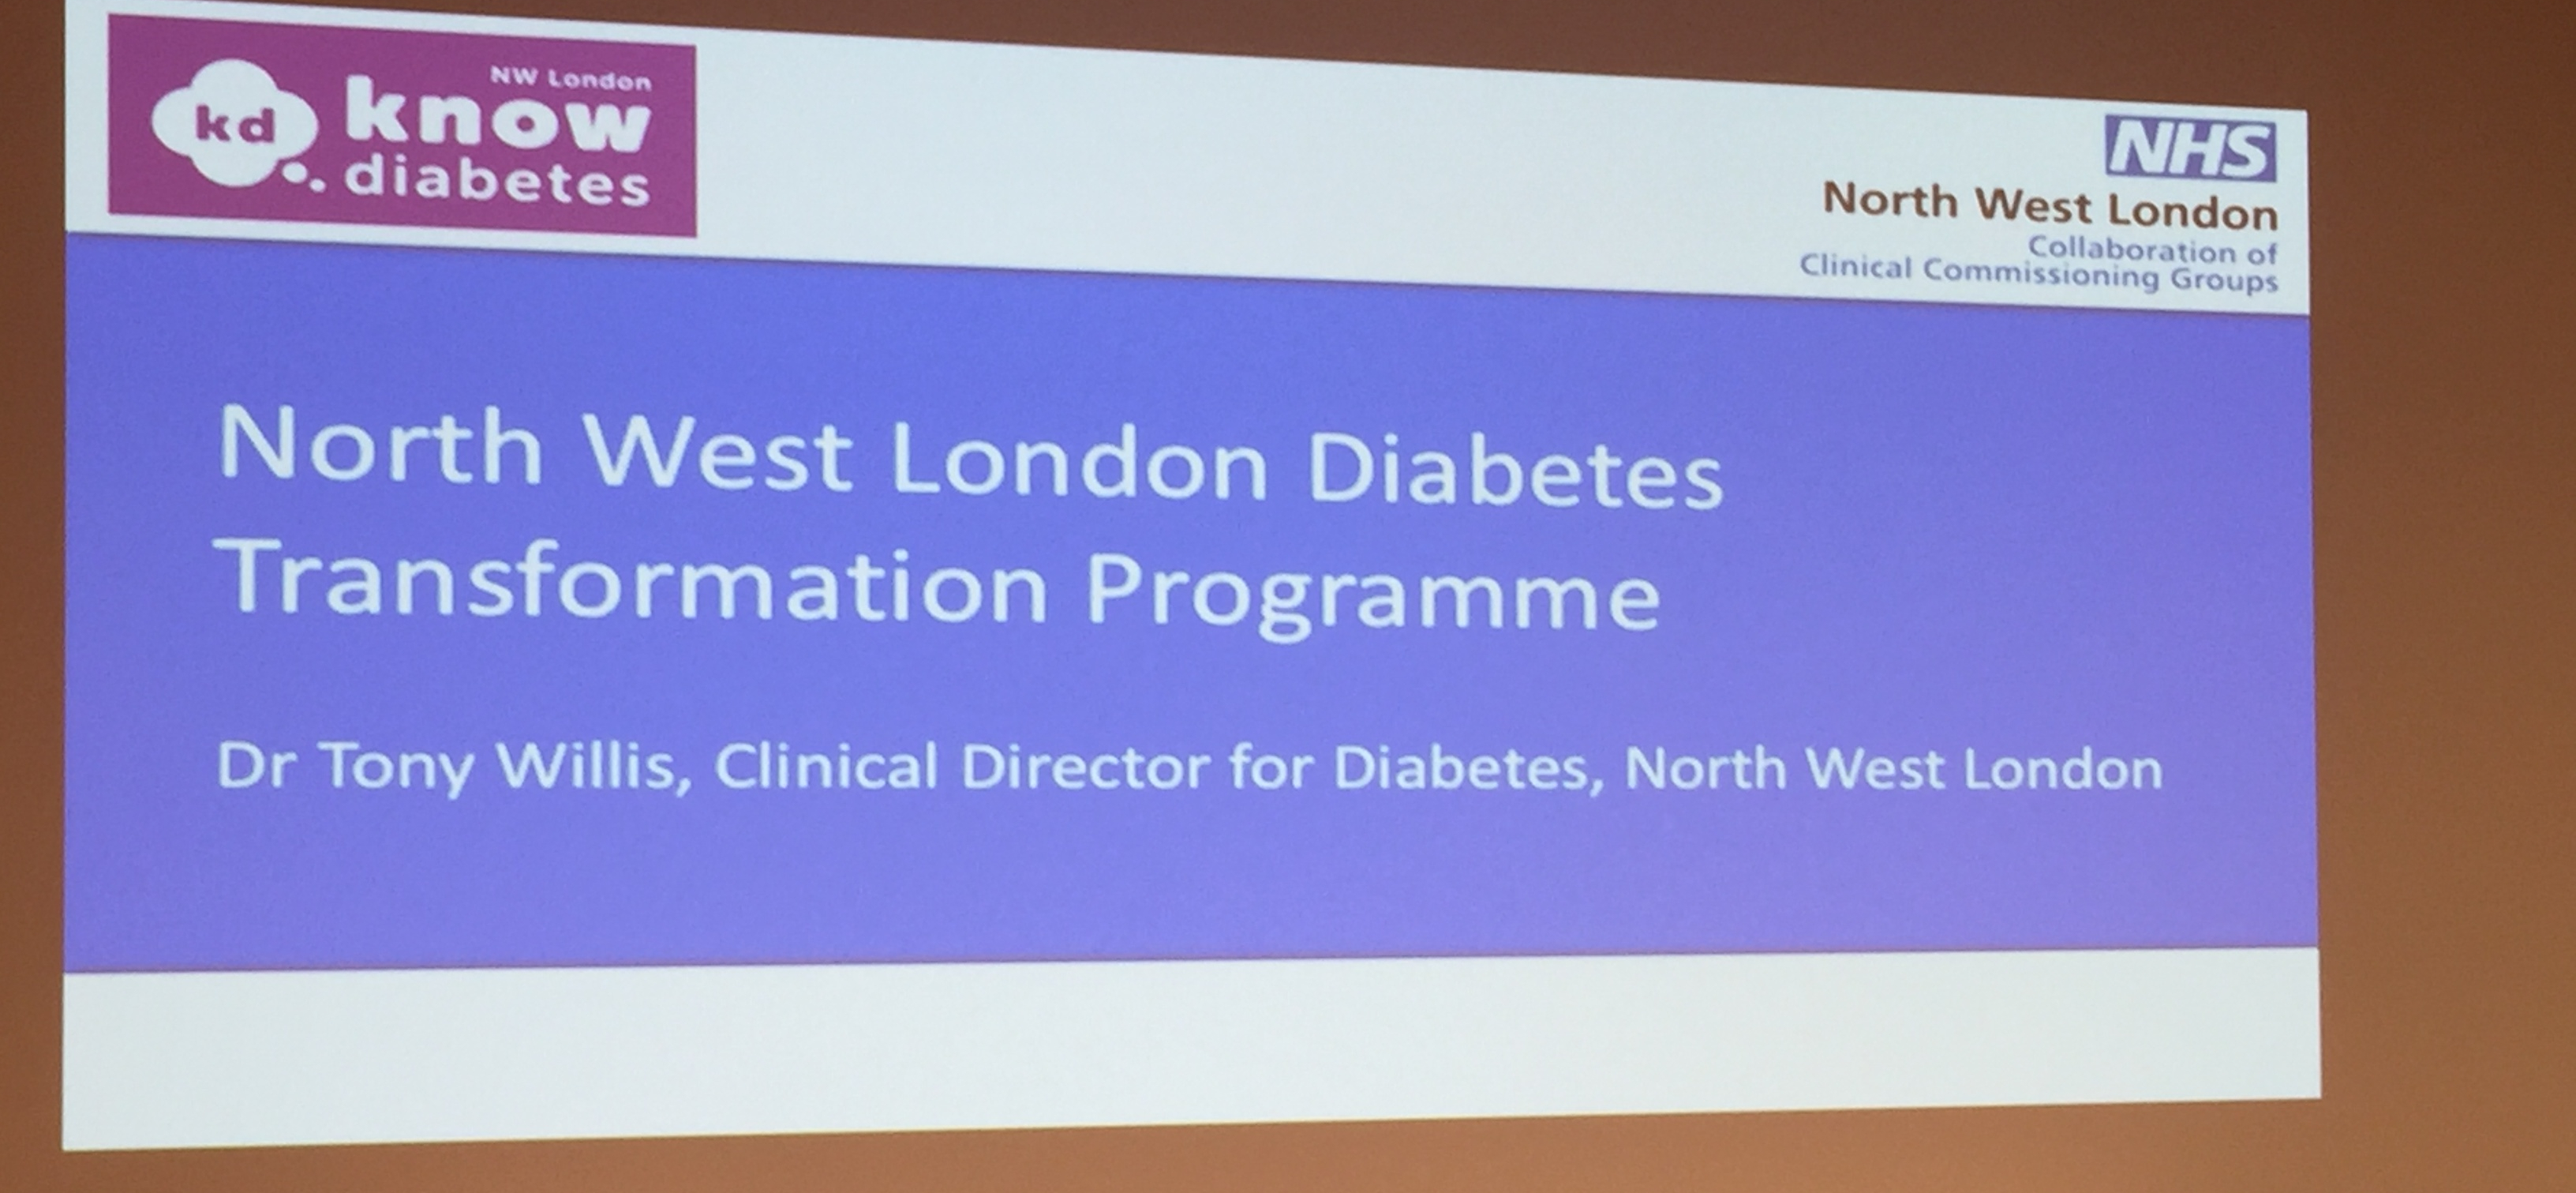 NW London World Diabetes Day Event